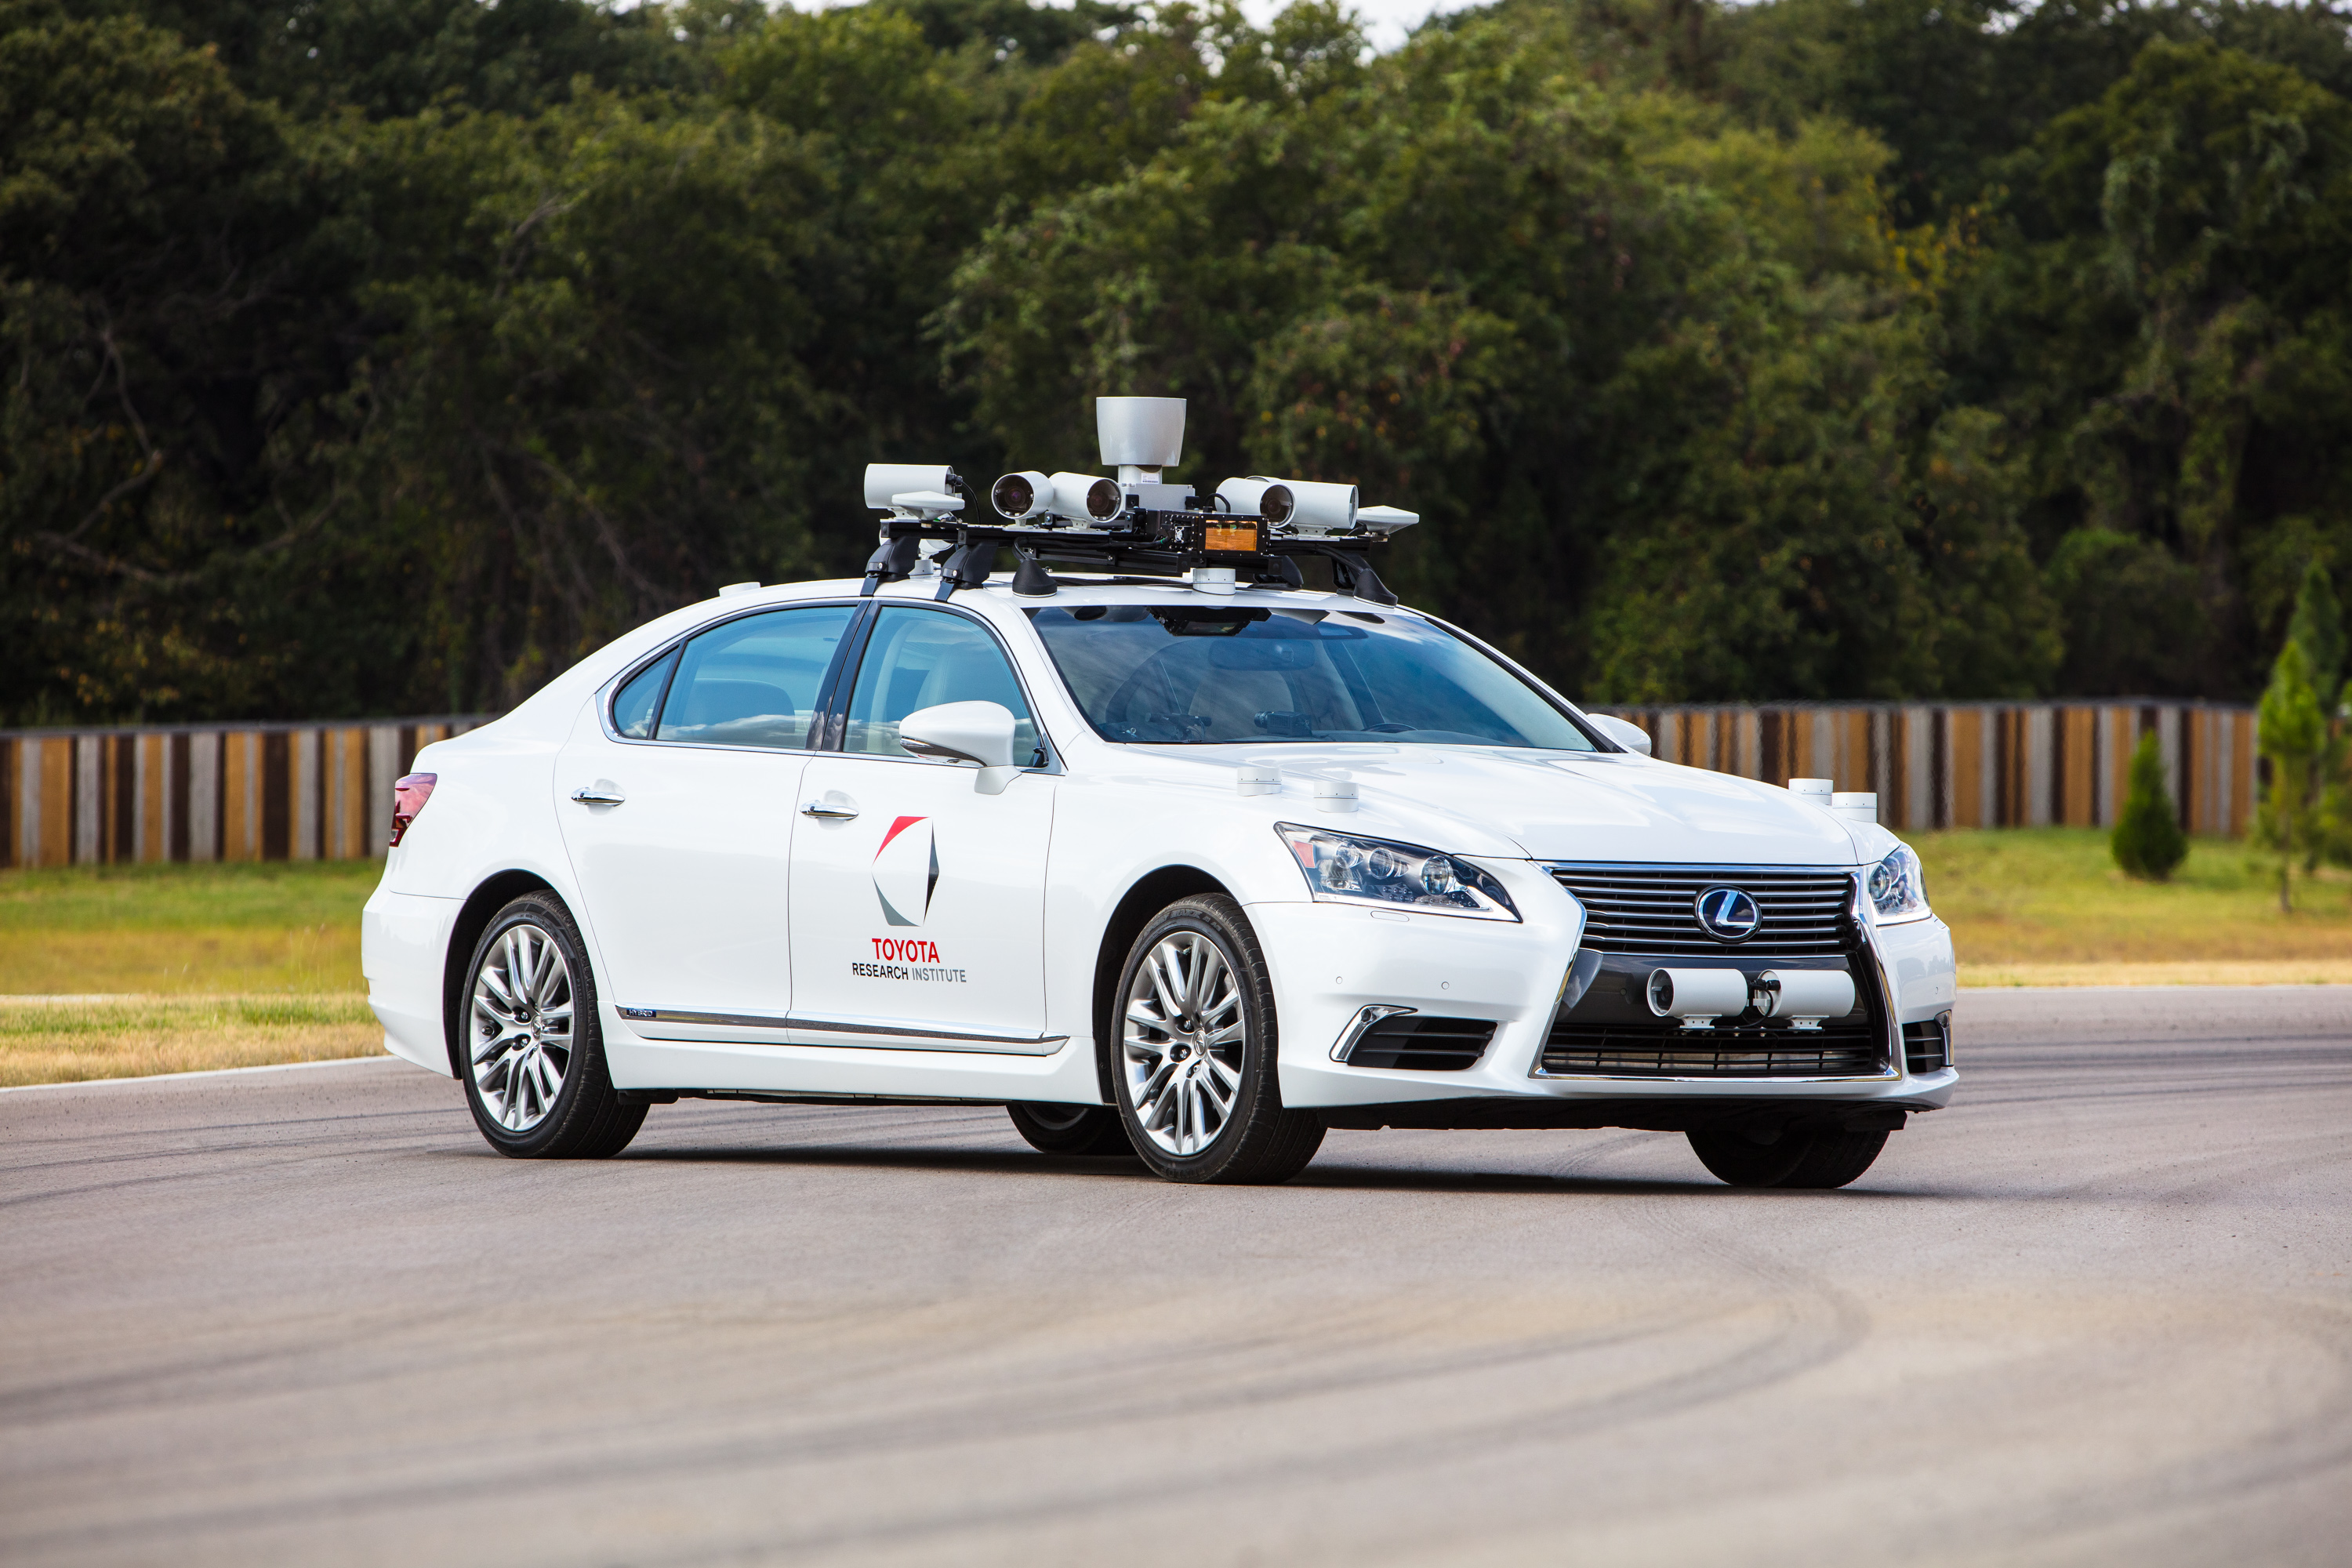 Toyota S New Self Driving Car Has Two Steering Wheels To